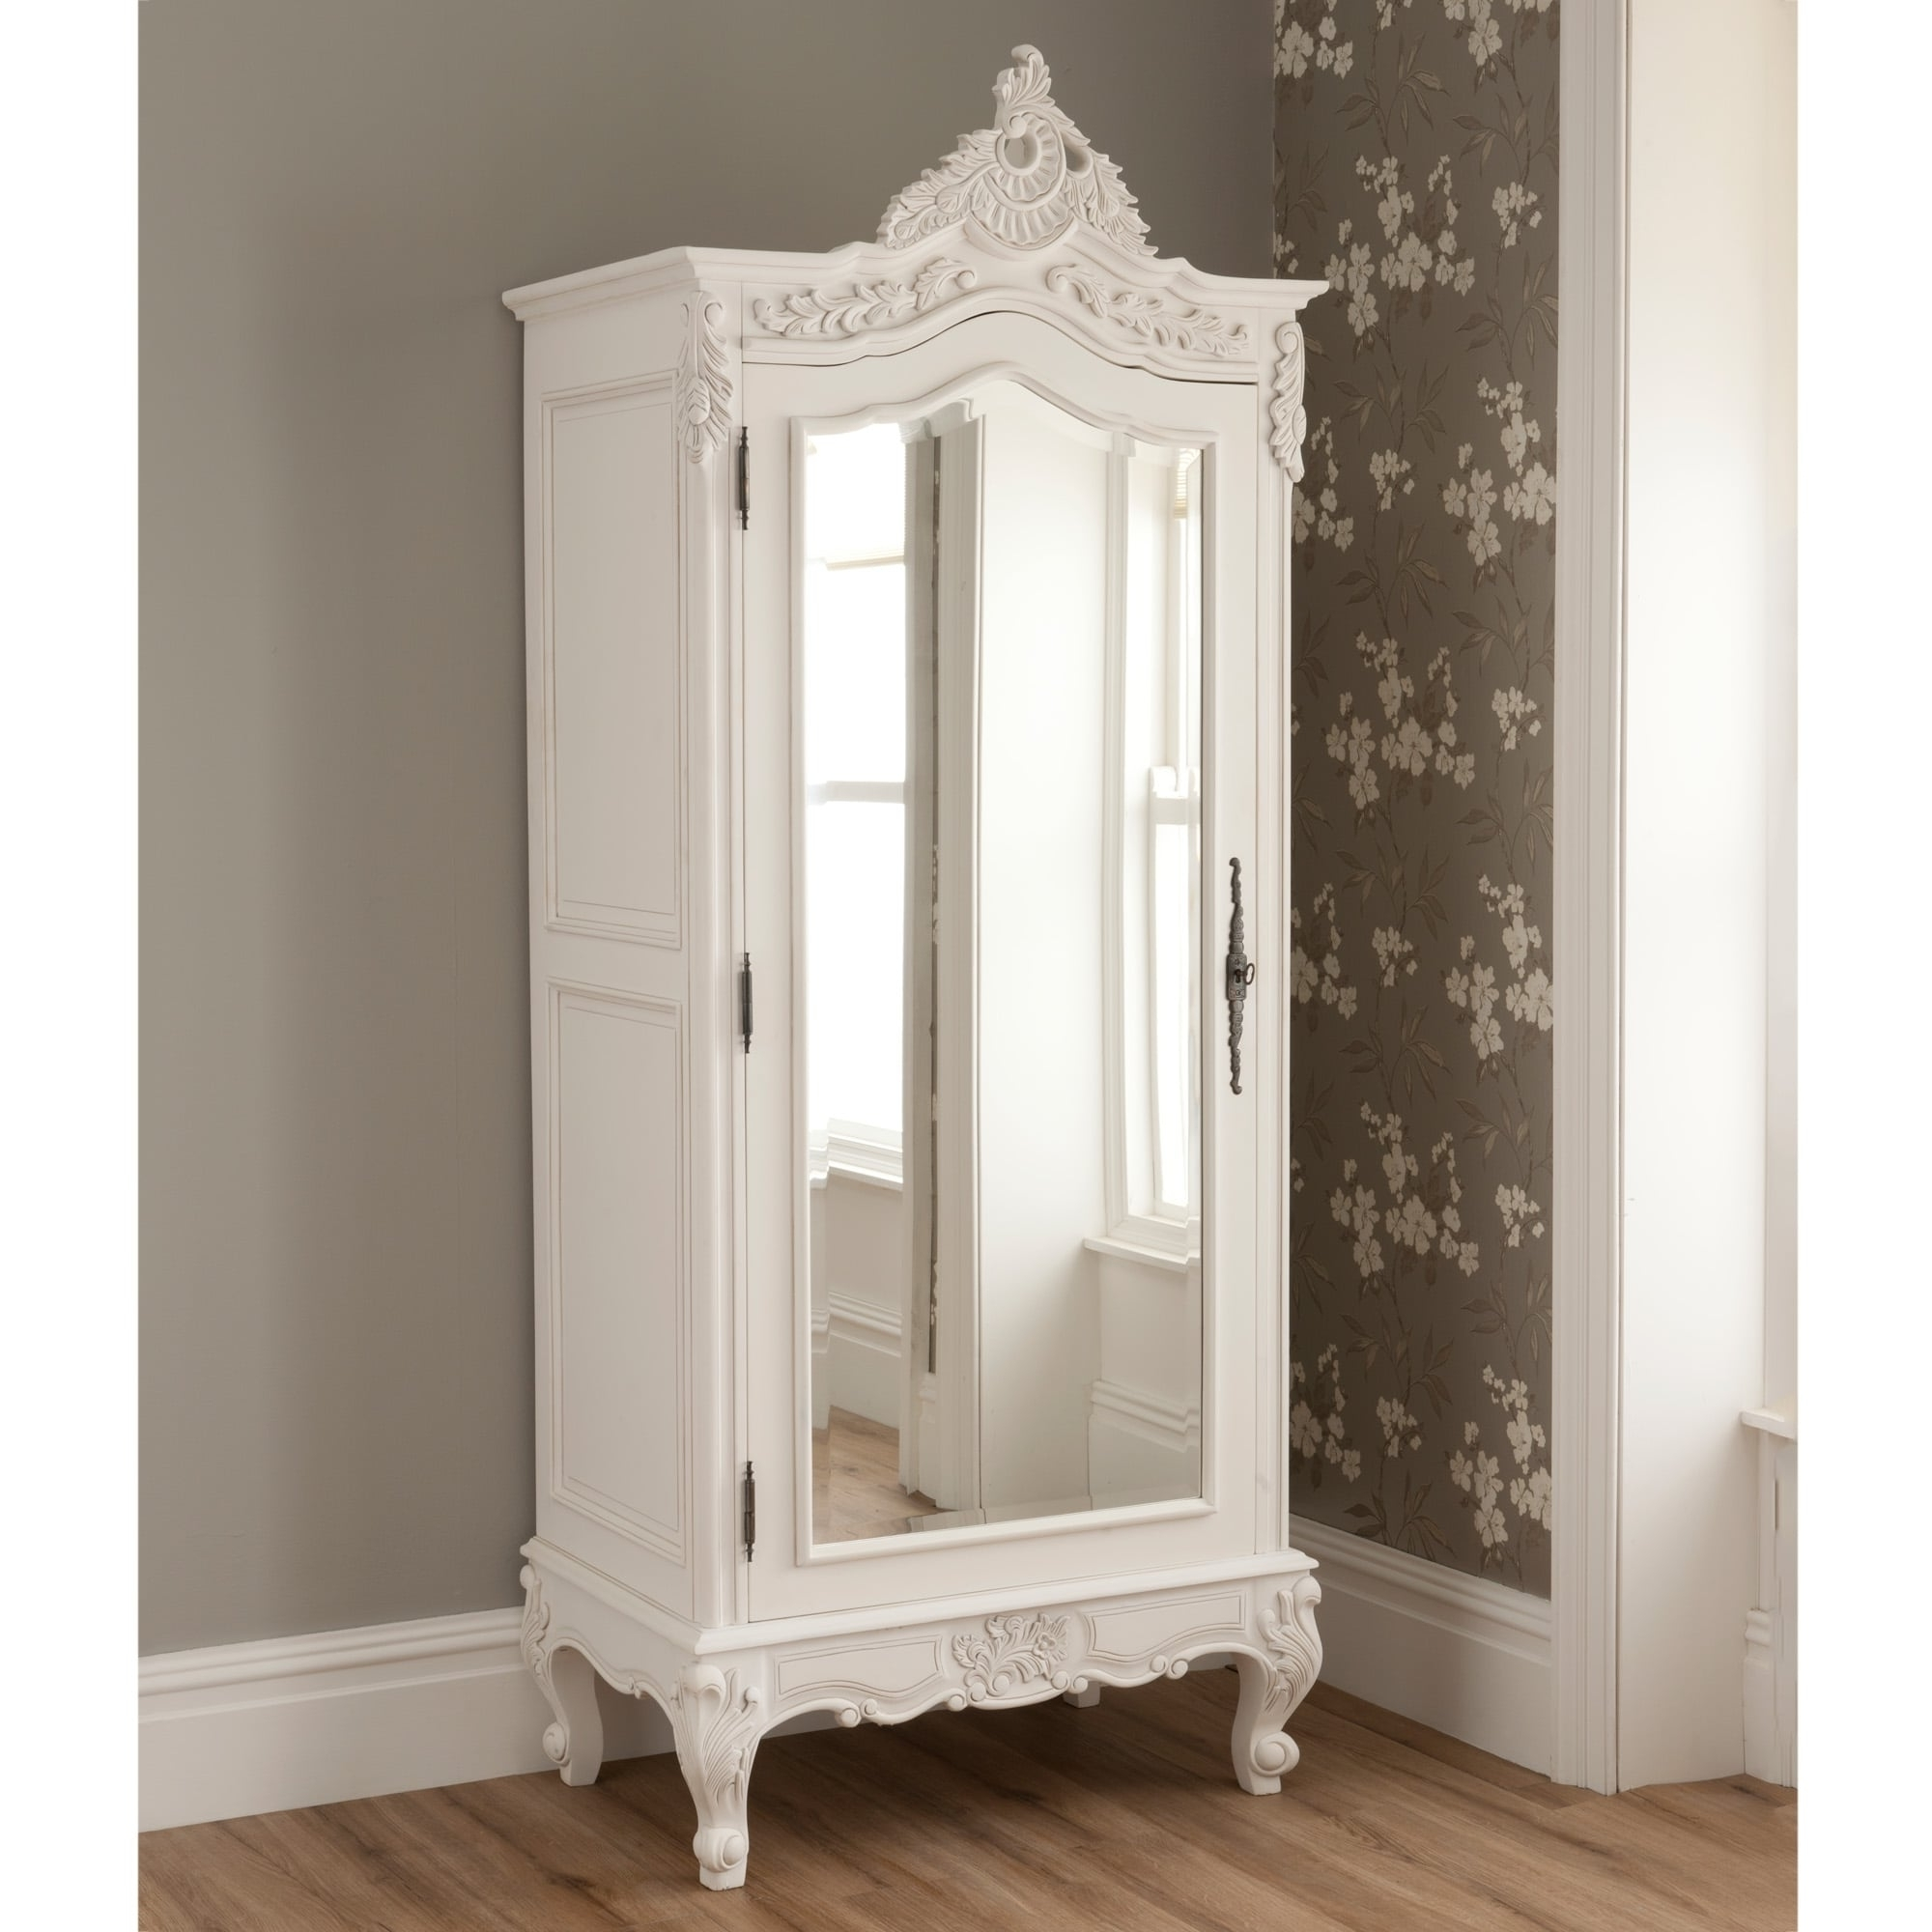 Shabby Chic Furniture (View 7 of 15)